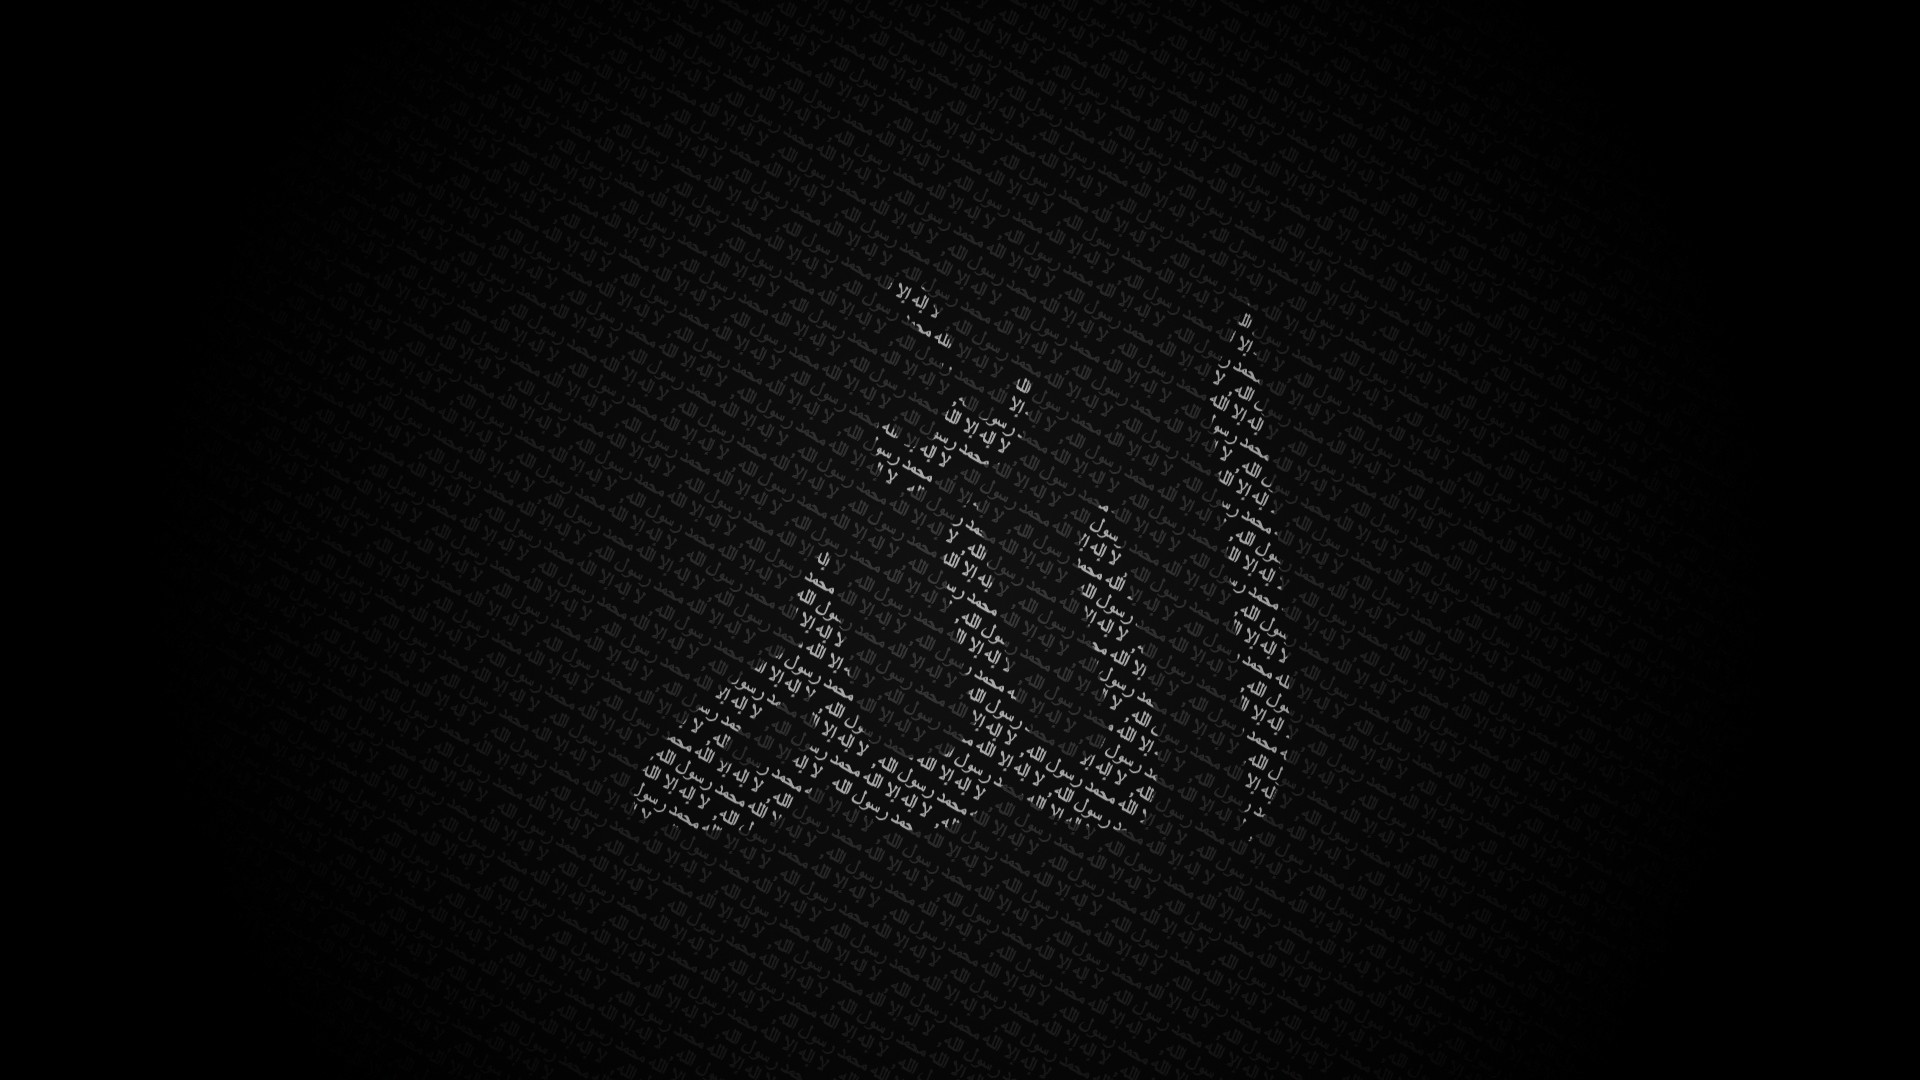 Islam Allahs Name Black and White HD Wallpaper Unique HD Wallpapers 1920x1080